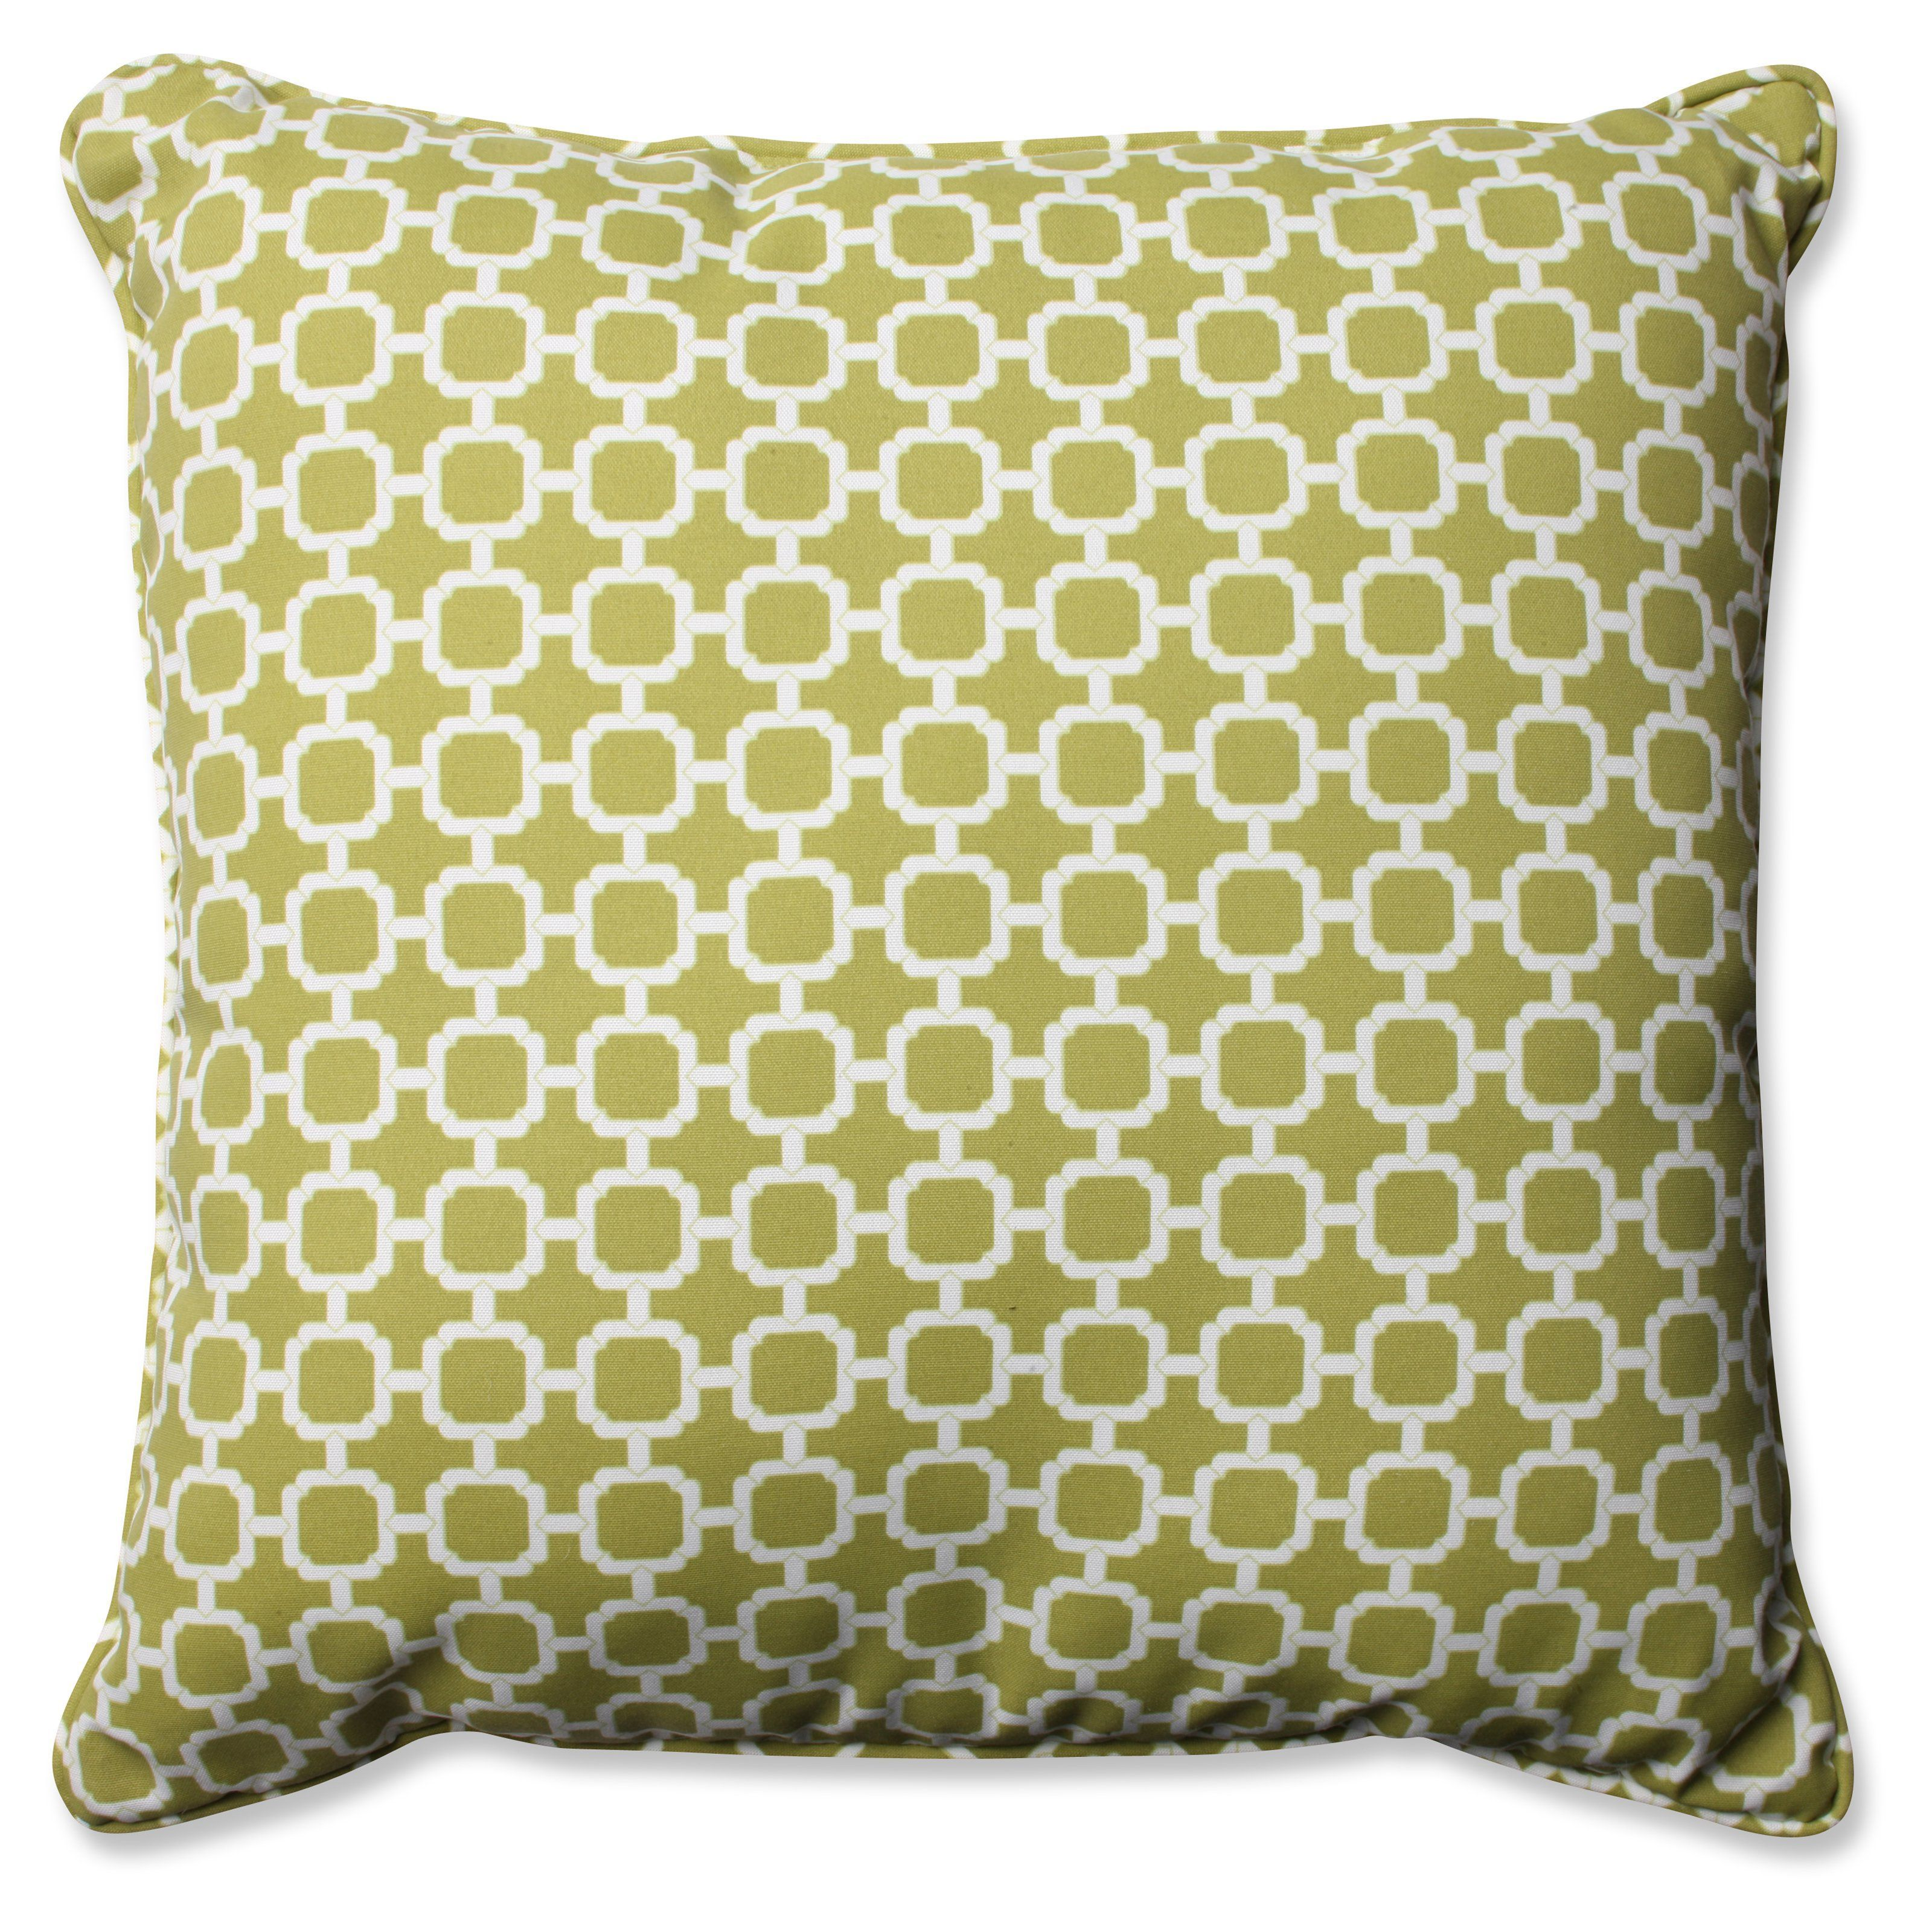 Pillow Perfect Hockley Chain 25 x 25 in. Floor Pillow - Green - 577883